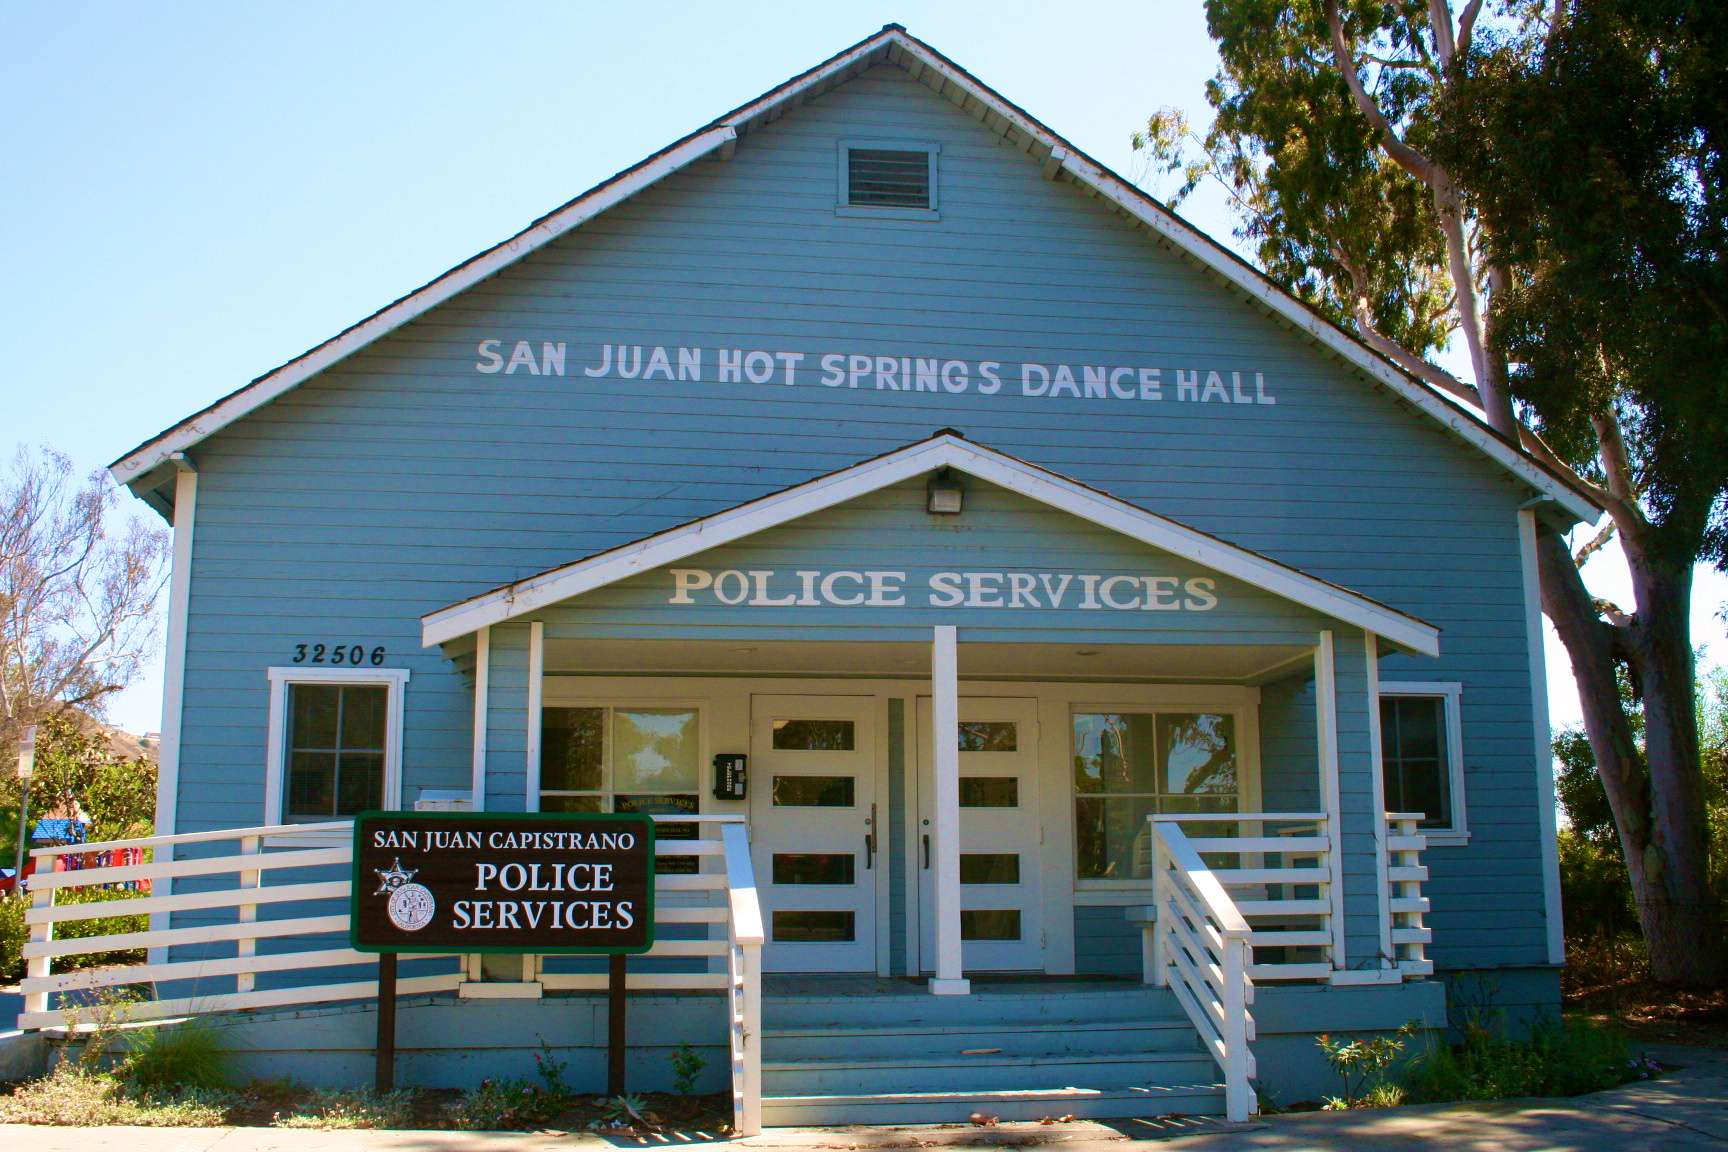 San Juan Capistrano Police Services. File photo